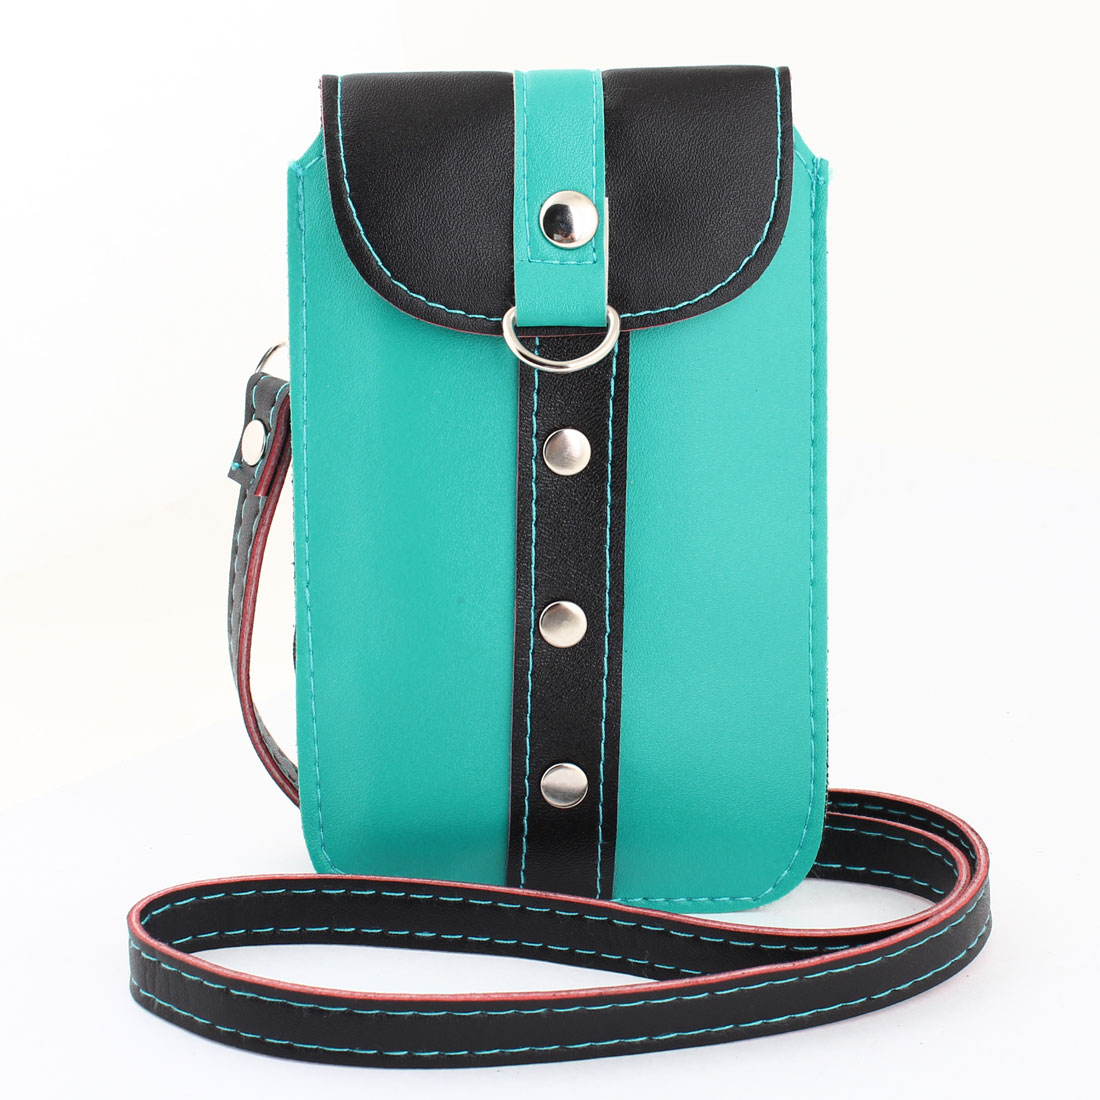 Press Button Closure Teal Green Black Faux Leather Mobile Phone Bag w Neck Strap